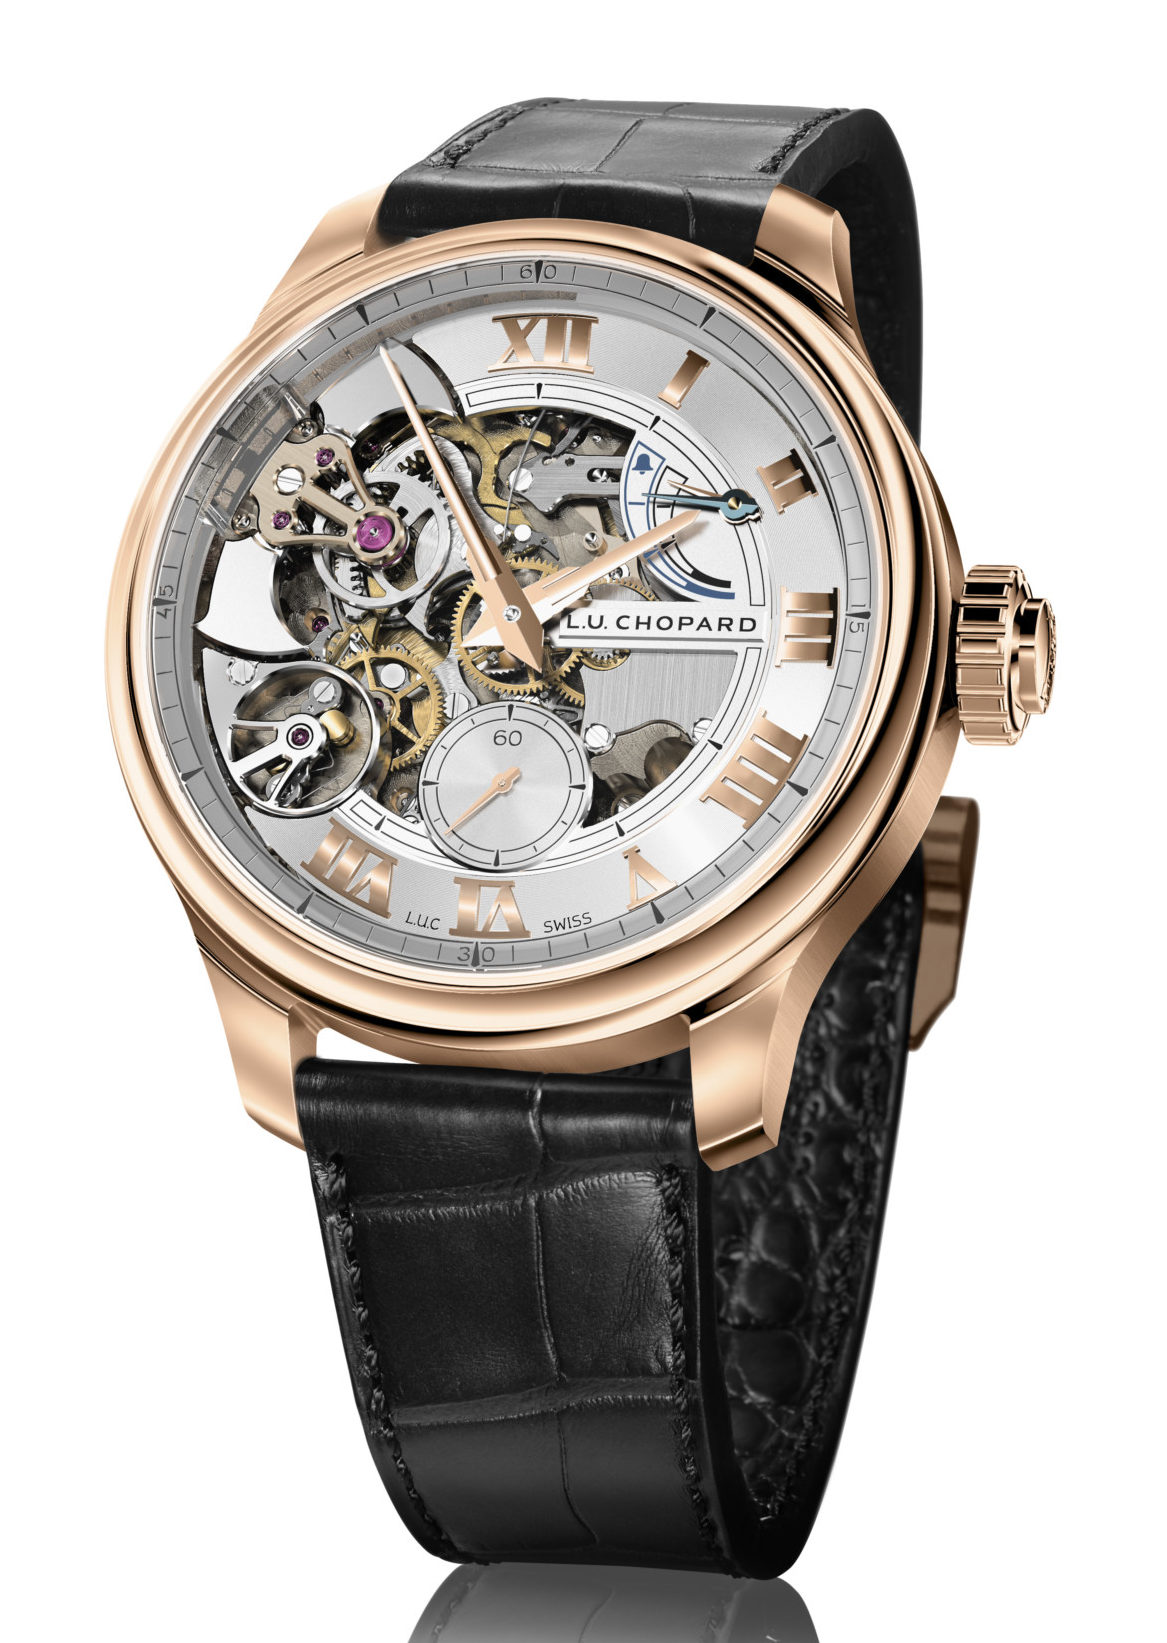 "The ""Aiguille d'Or"" Prize was won by: Chopard, L.U.C for its Full Strike timepiece."